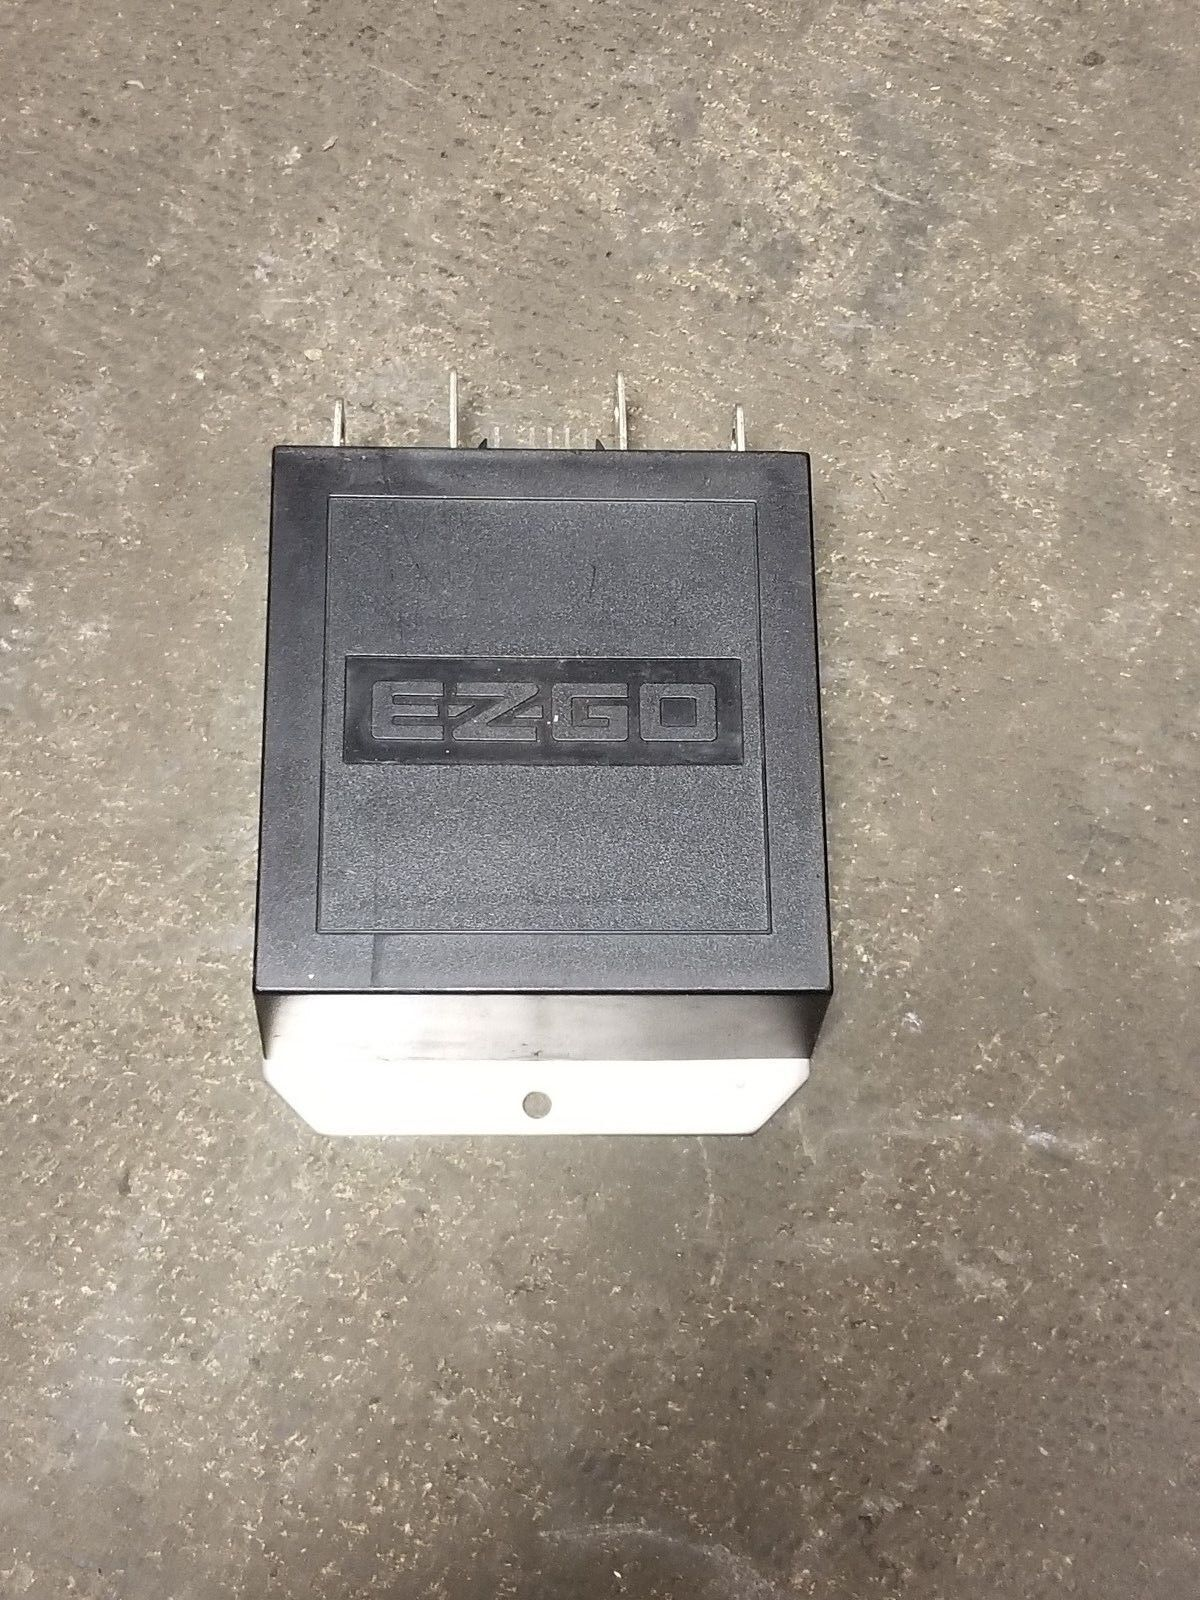 hight resolution of ezgo curtis 36v 36 volt motor controller txt series 1206 5 pin golf cart car forklift parts and accessories